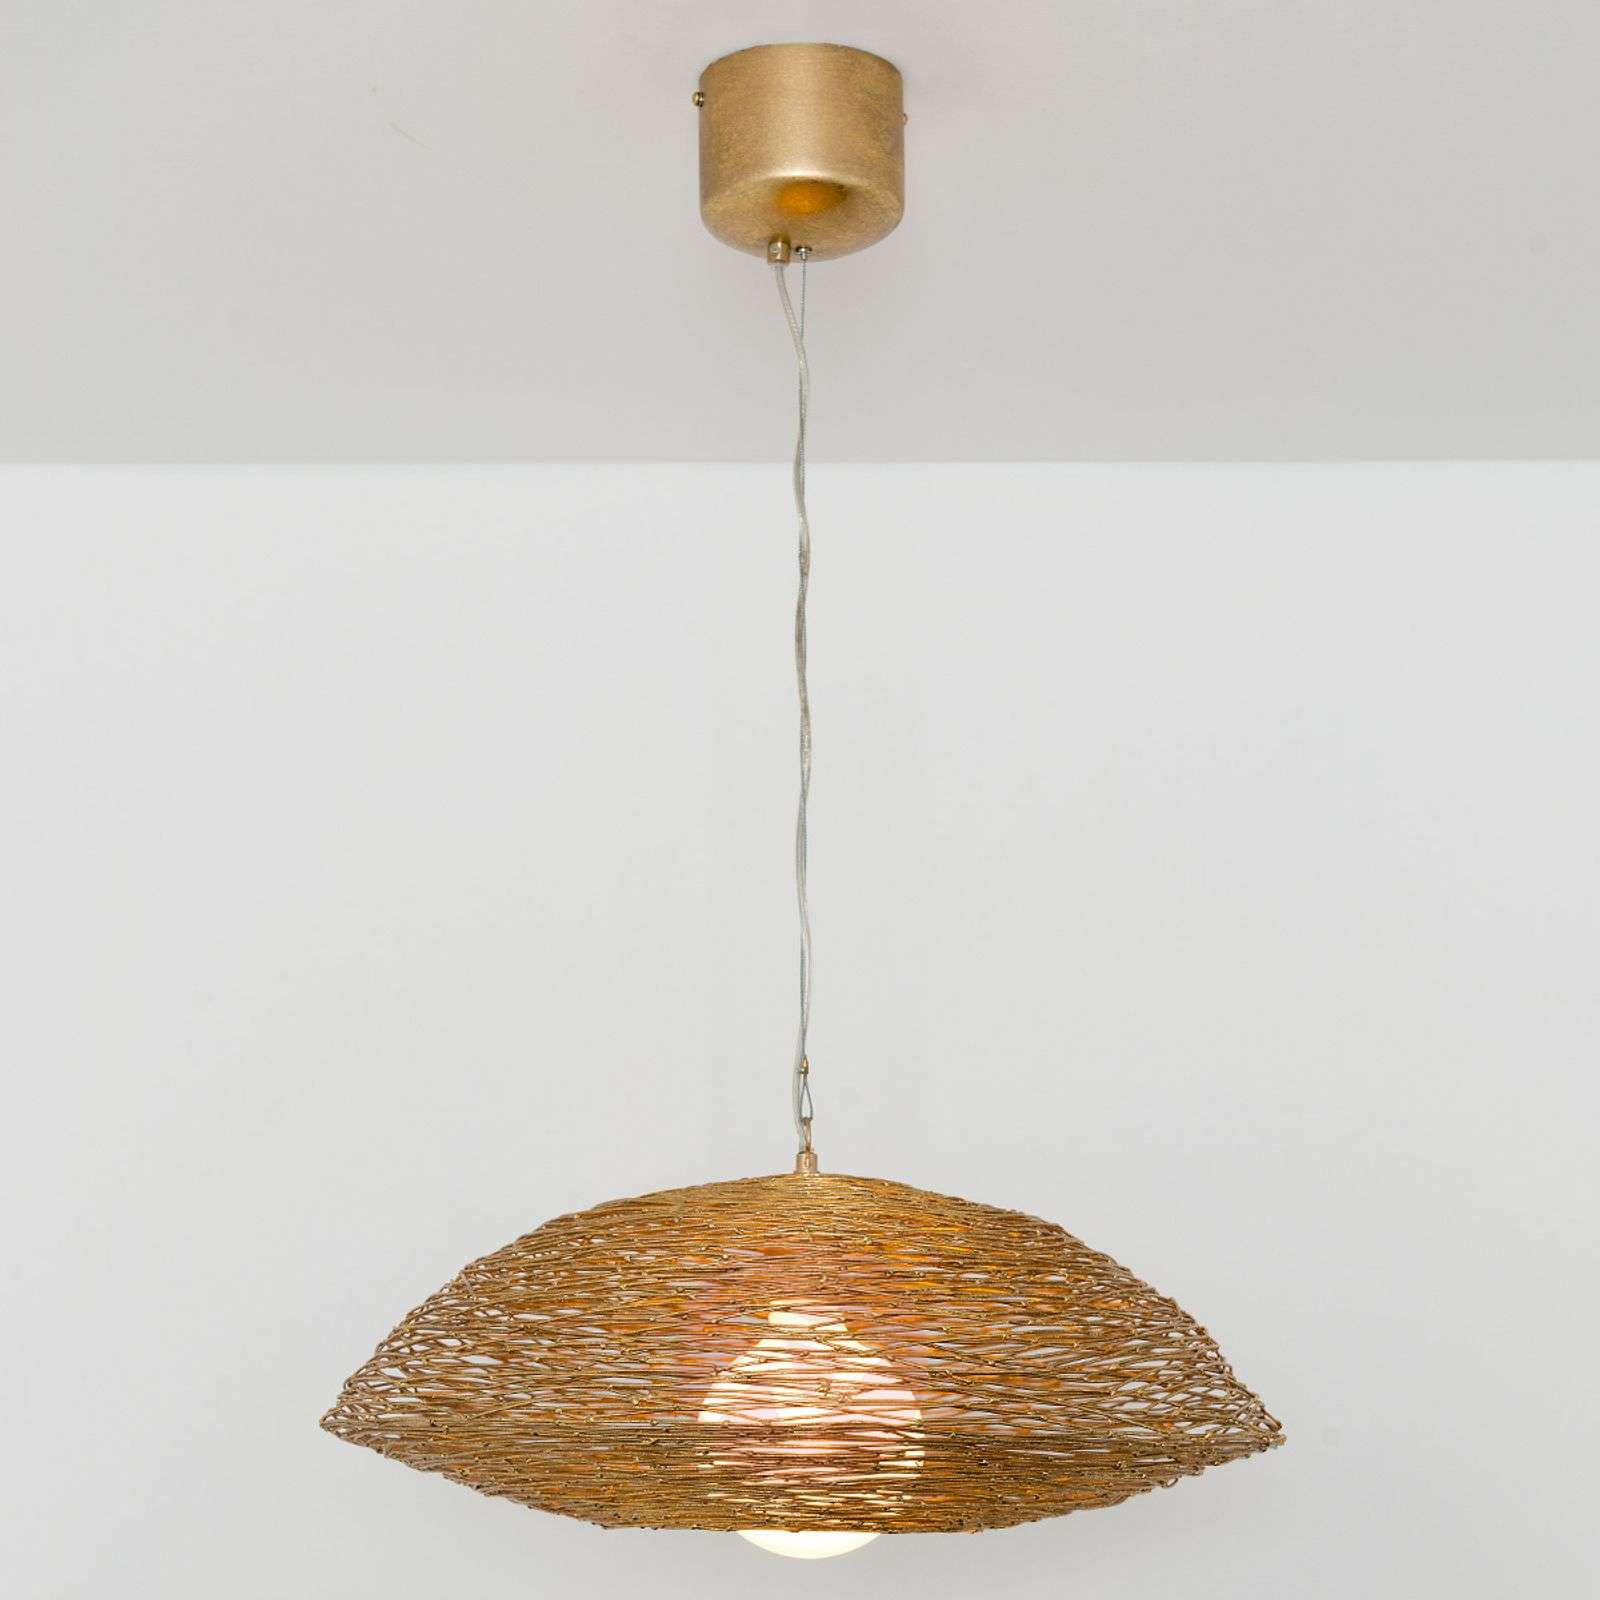 Pendant light piseo with a woven metal lampshade lights pendant light piseo with a woven metal lampshade 4512521 01 aloadofball Image collections